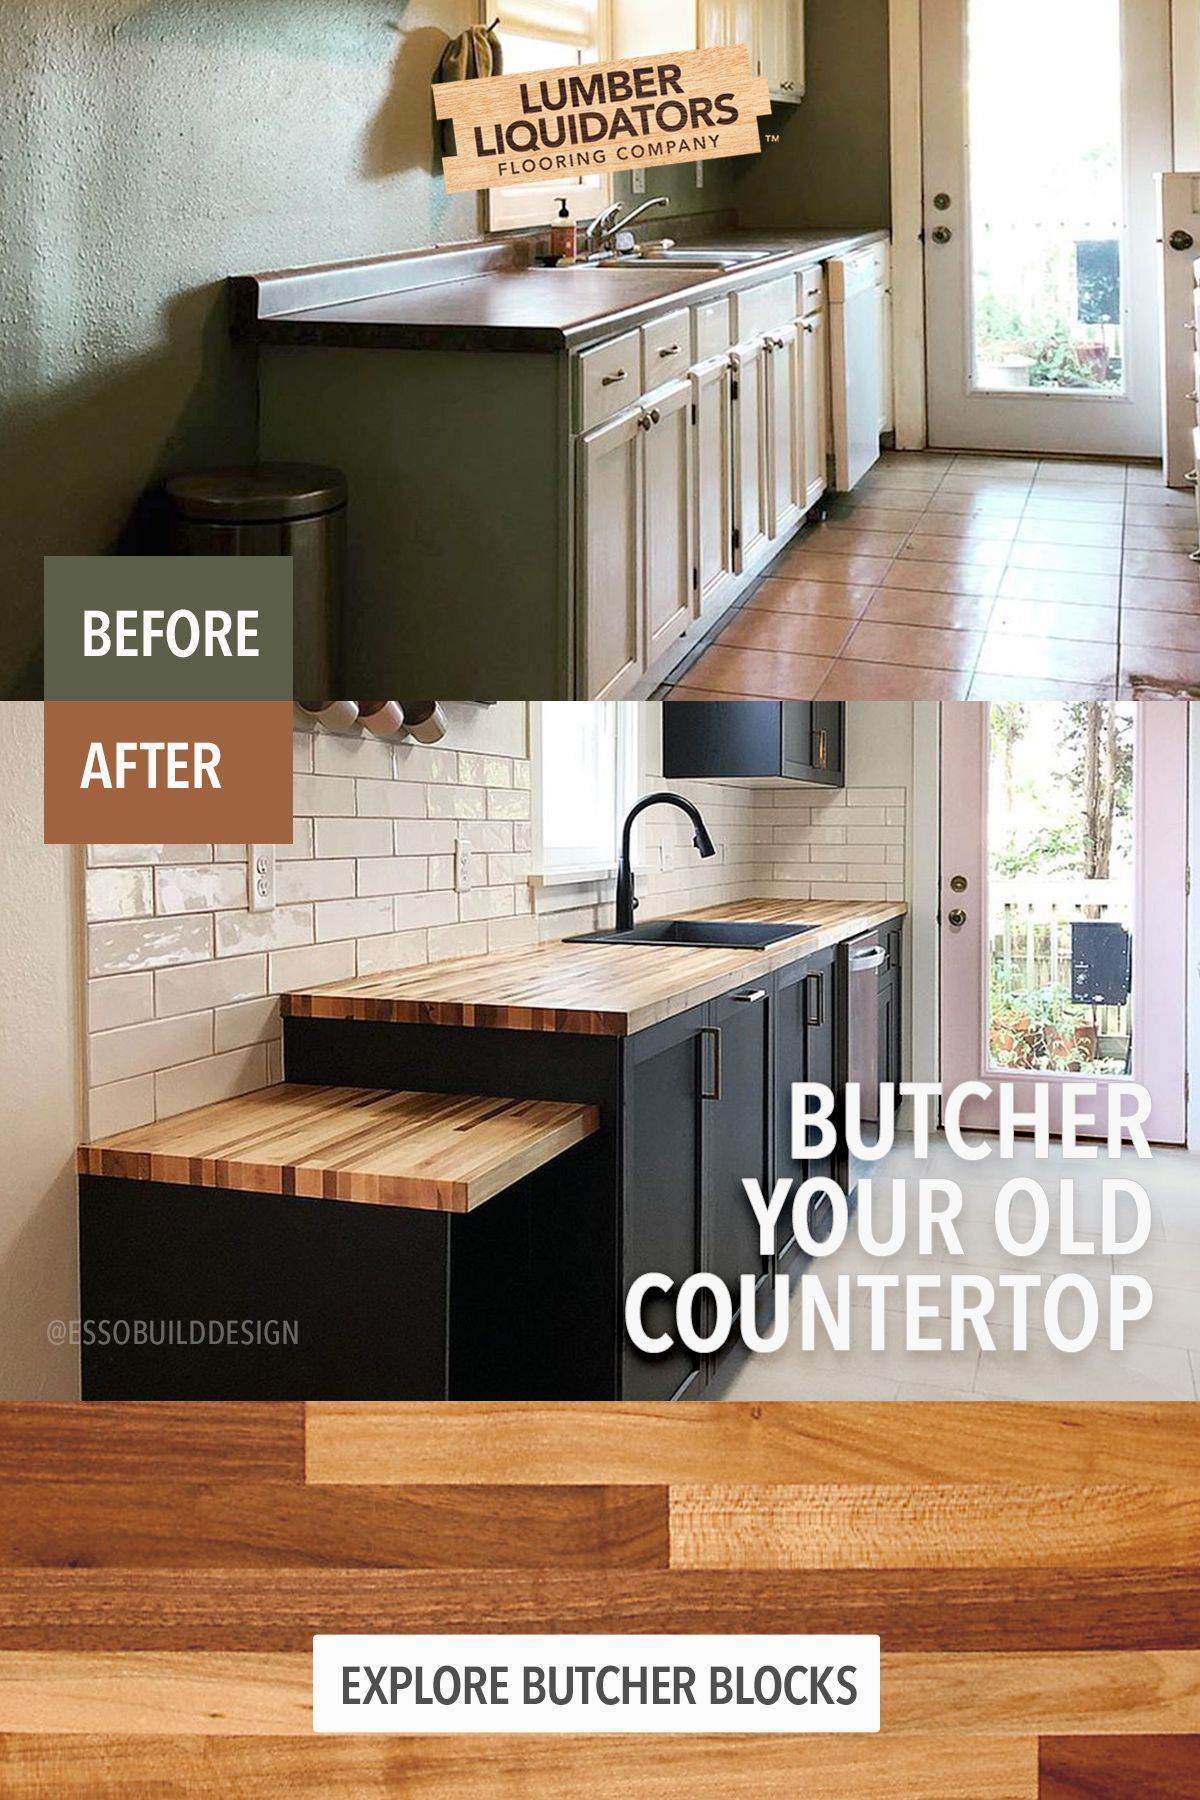 Butcher Block Countertops From Lumber Liquidators Bring A Premium Look And Feel To Your Kitchen Witho Diy Kitchen Remodel Home Remodeling Kitchen Remodel Small